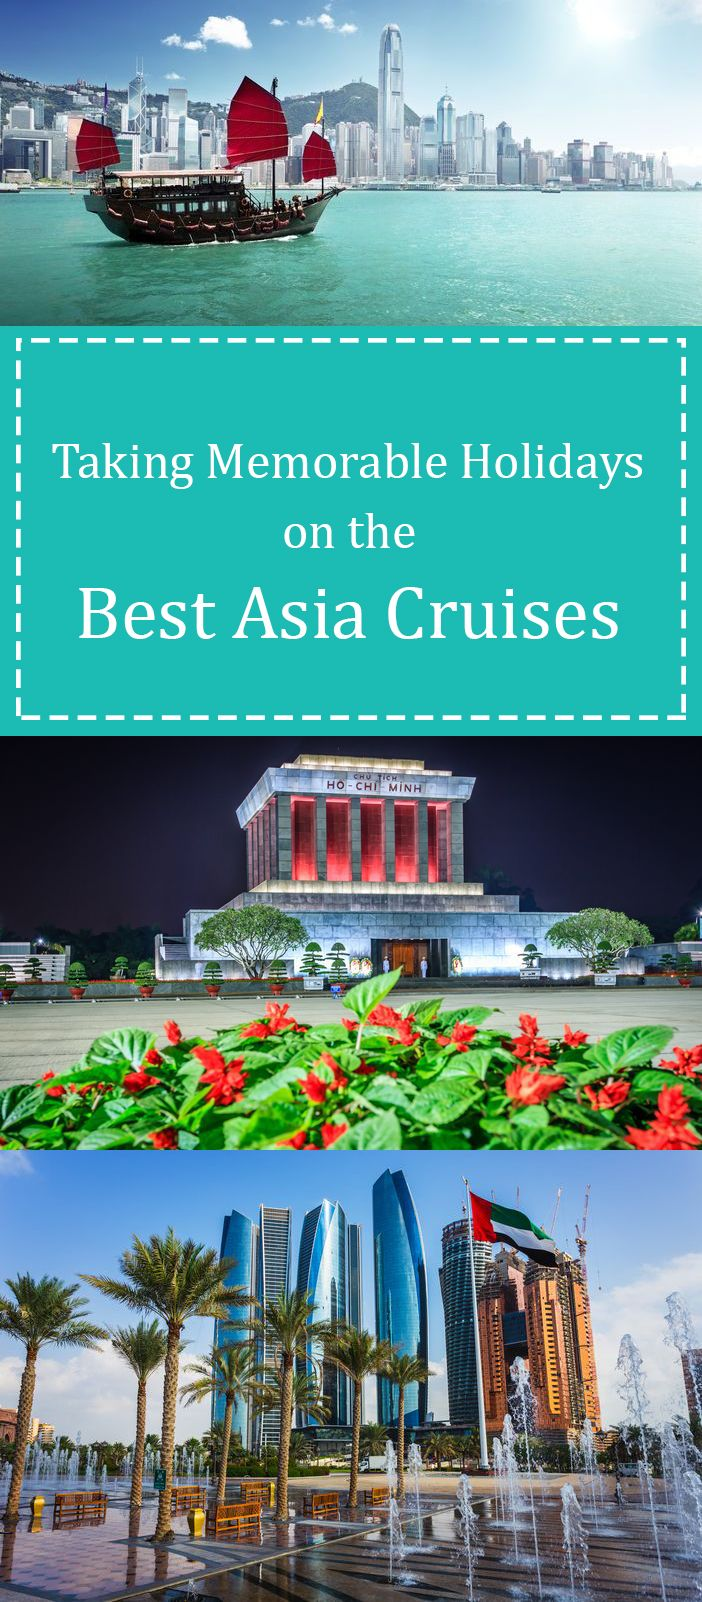 Regardless of where the best Asia cruises take you, ensure you carry all your five senses with you; you will experience a fine mix of exotic tastes, experiences, sounds and sites that will sure stretch you to your ecstatic limits.